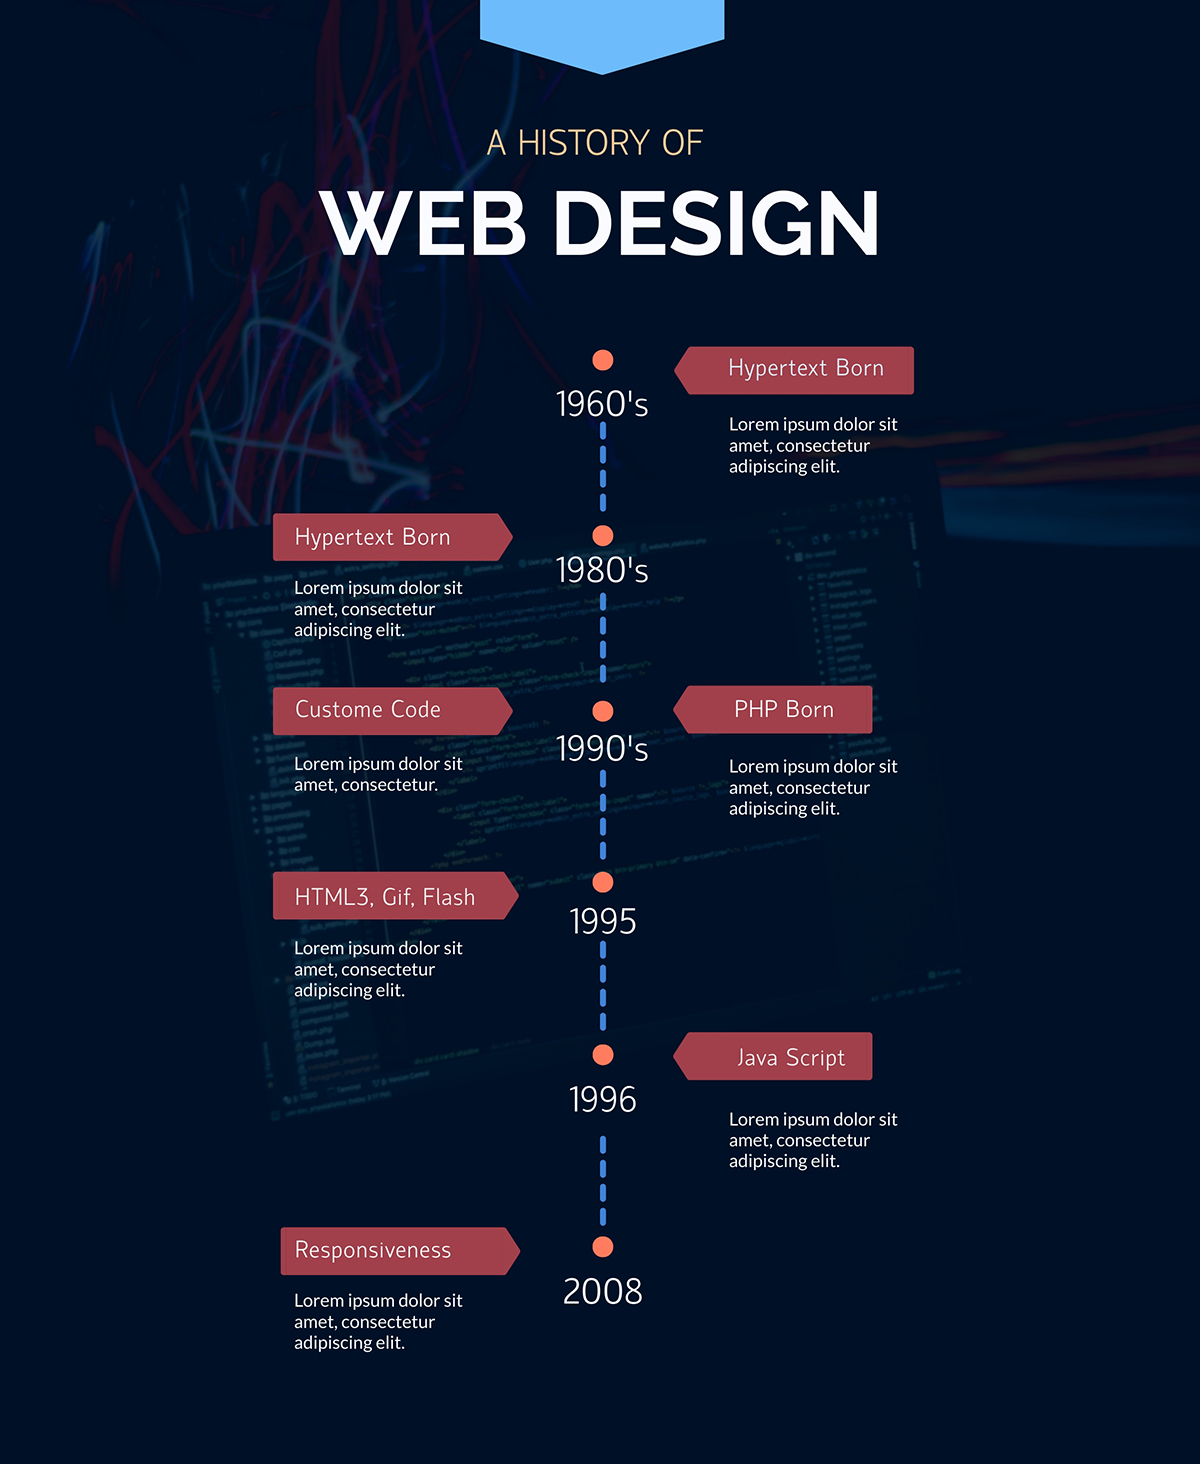 A timeline infographic template by Visme visualizing the history of web design.